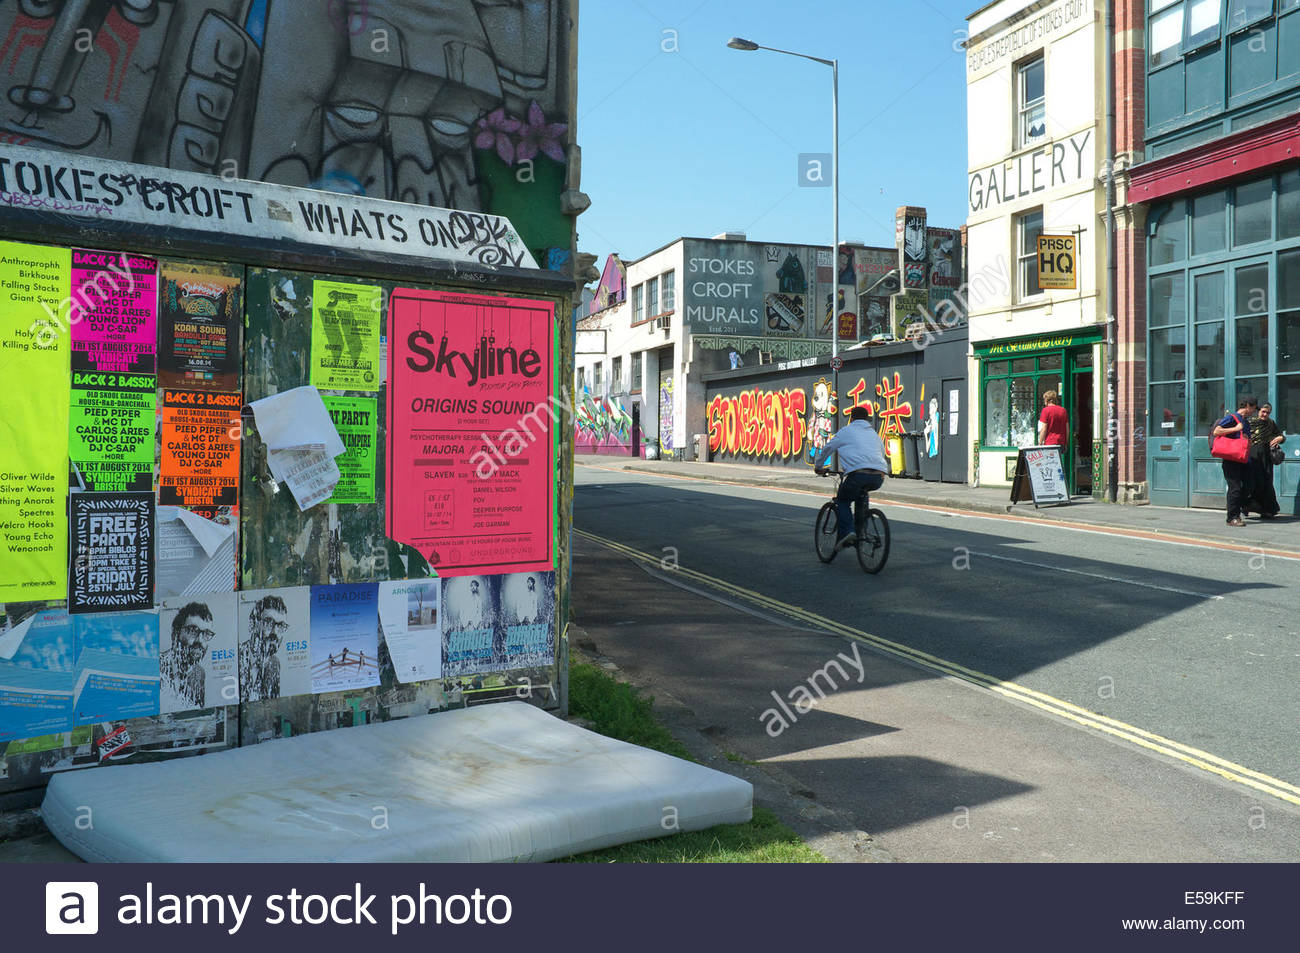 Street scene in Stokes Croft, Bristol, looking down Jamaica Street, and also showing event posters and a discarded - Stock Image